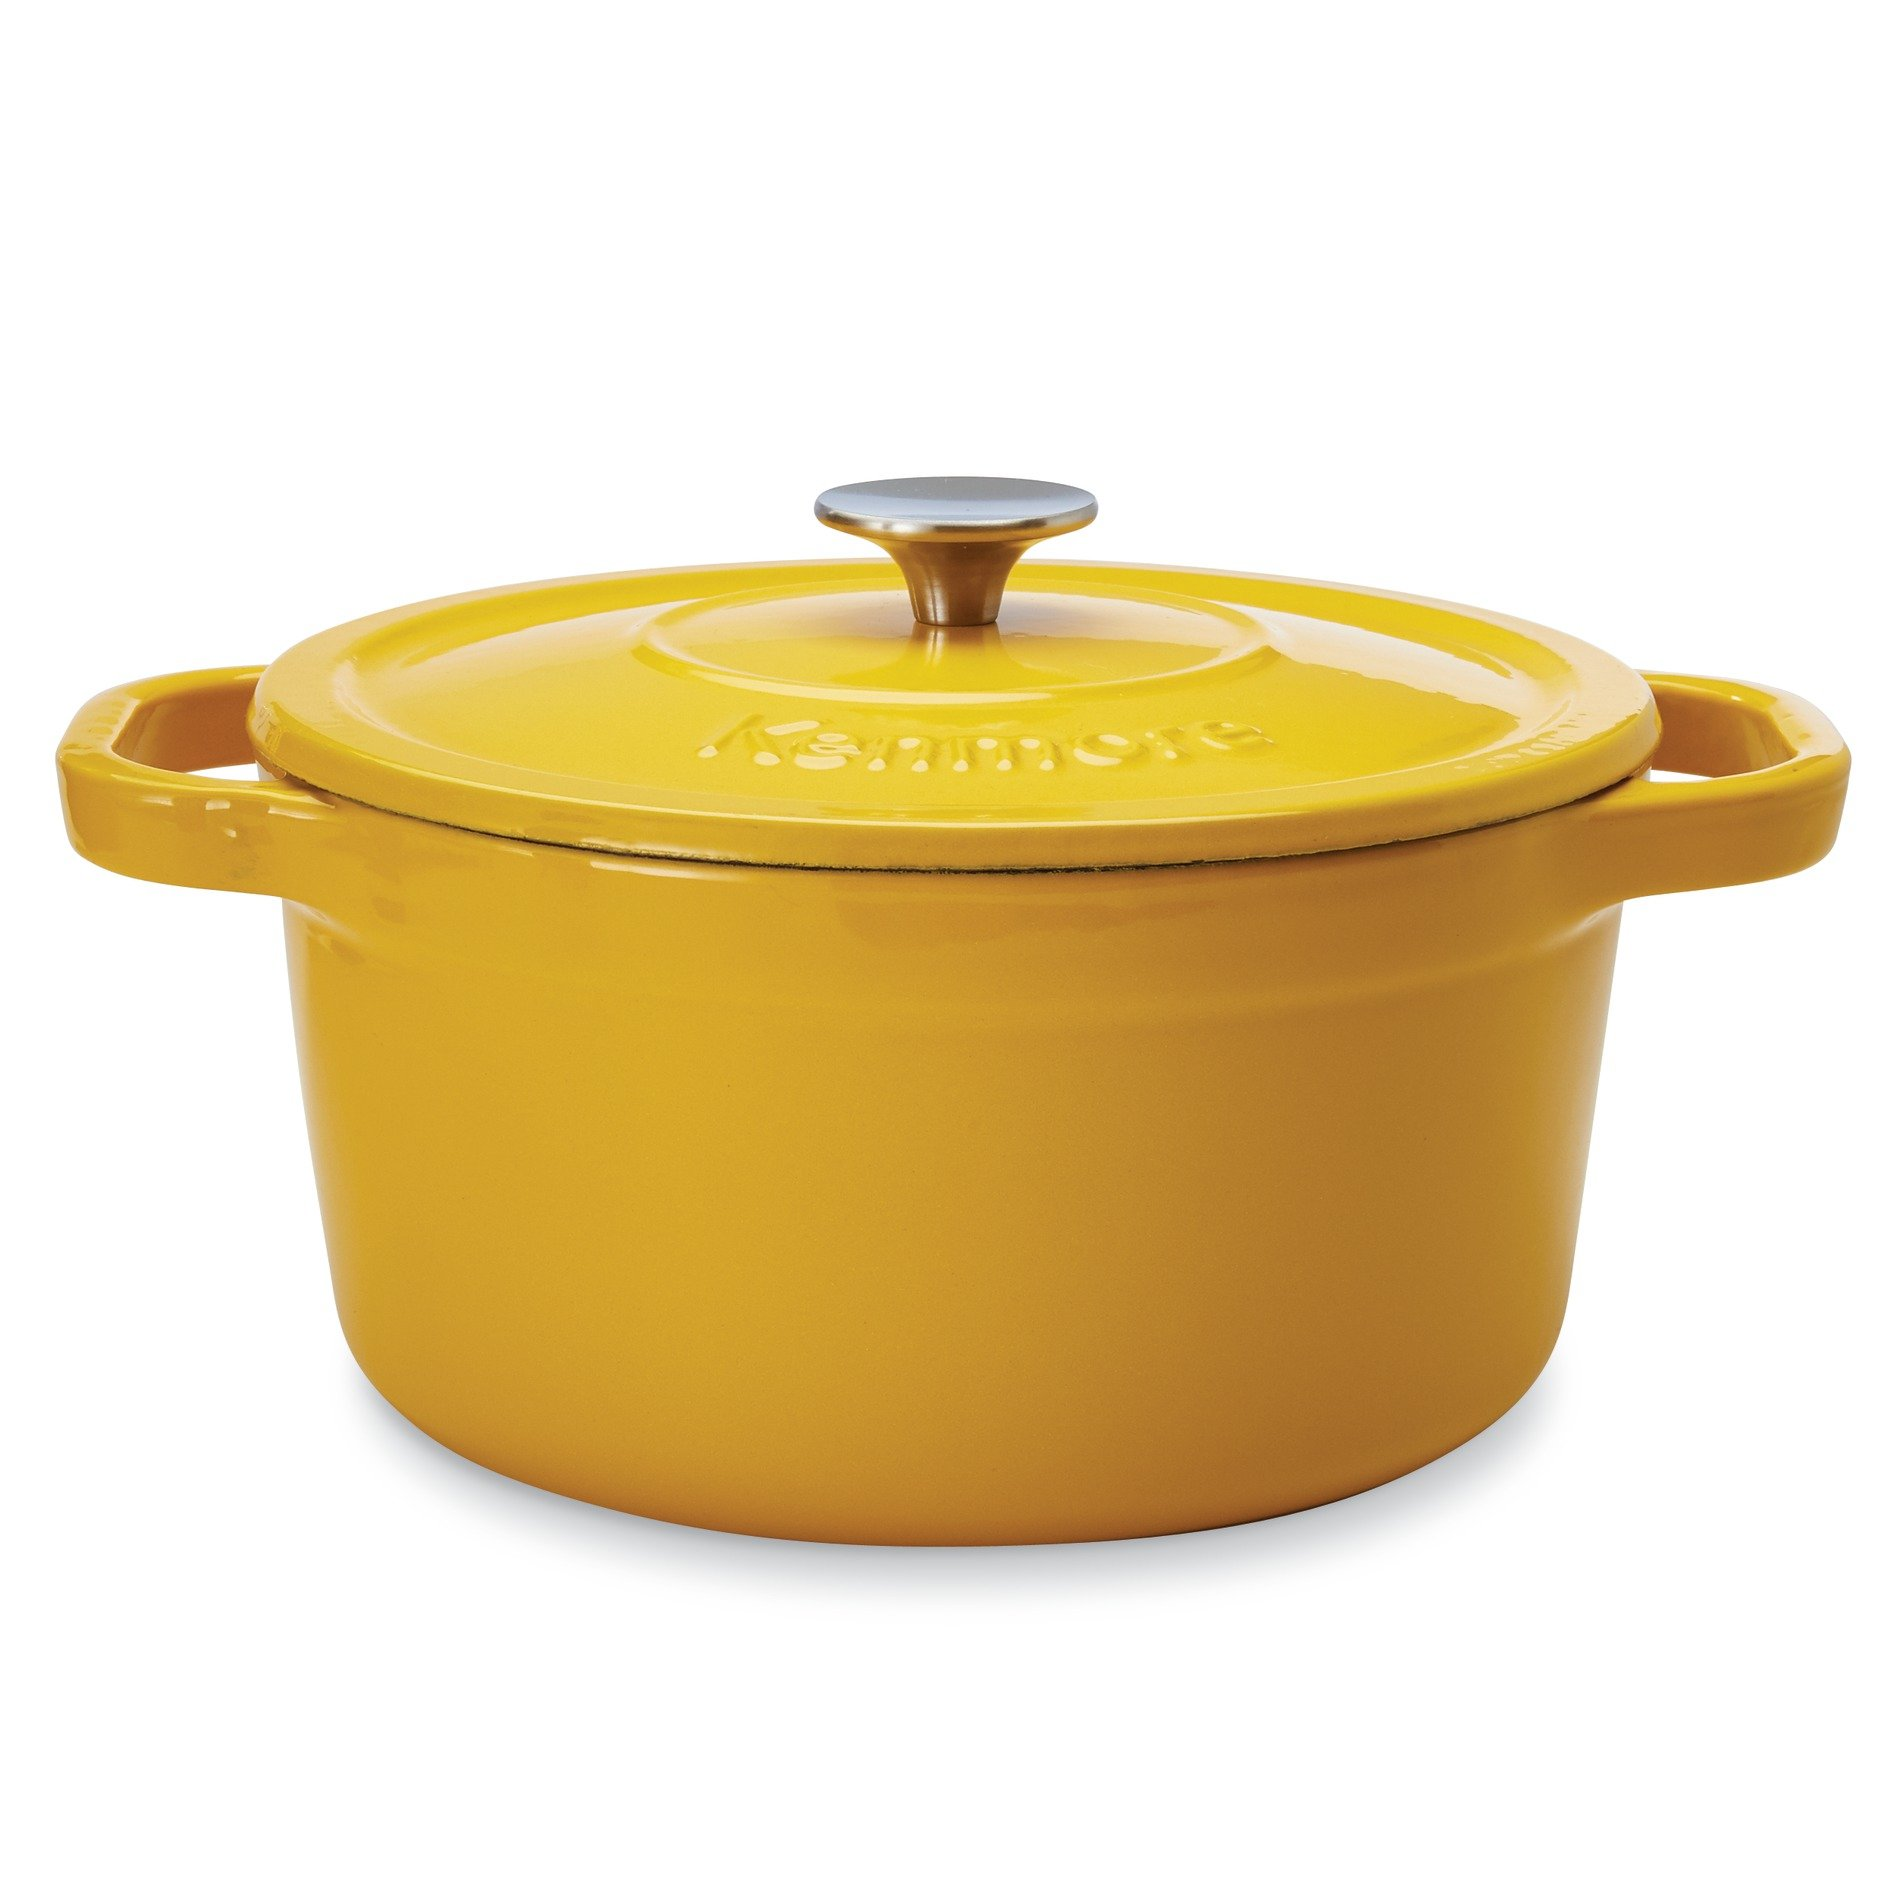 Kenmore 19247 5.5 Quart Cast Iron Enameled Coated Dutch Oven in Yellow